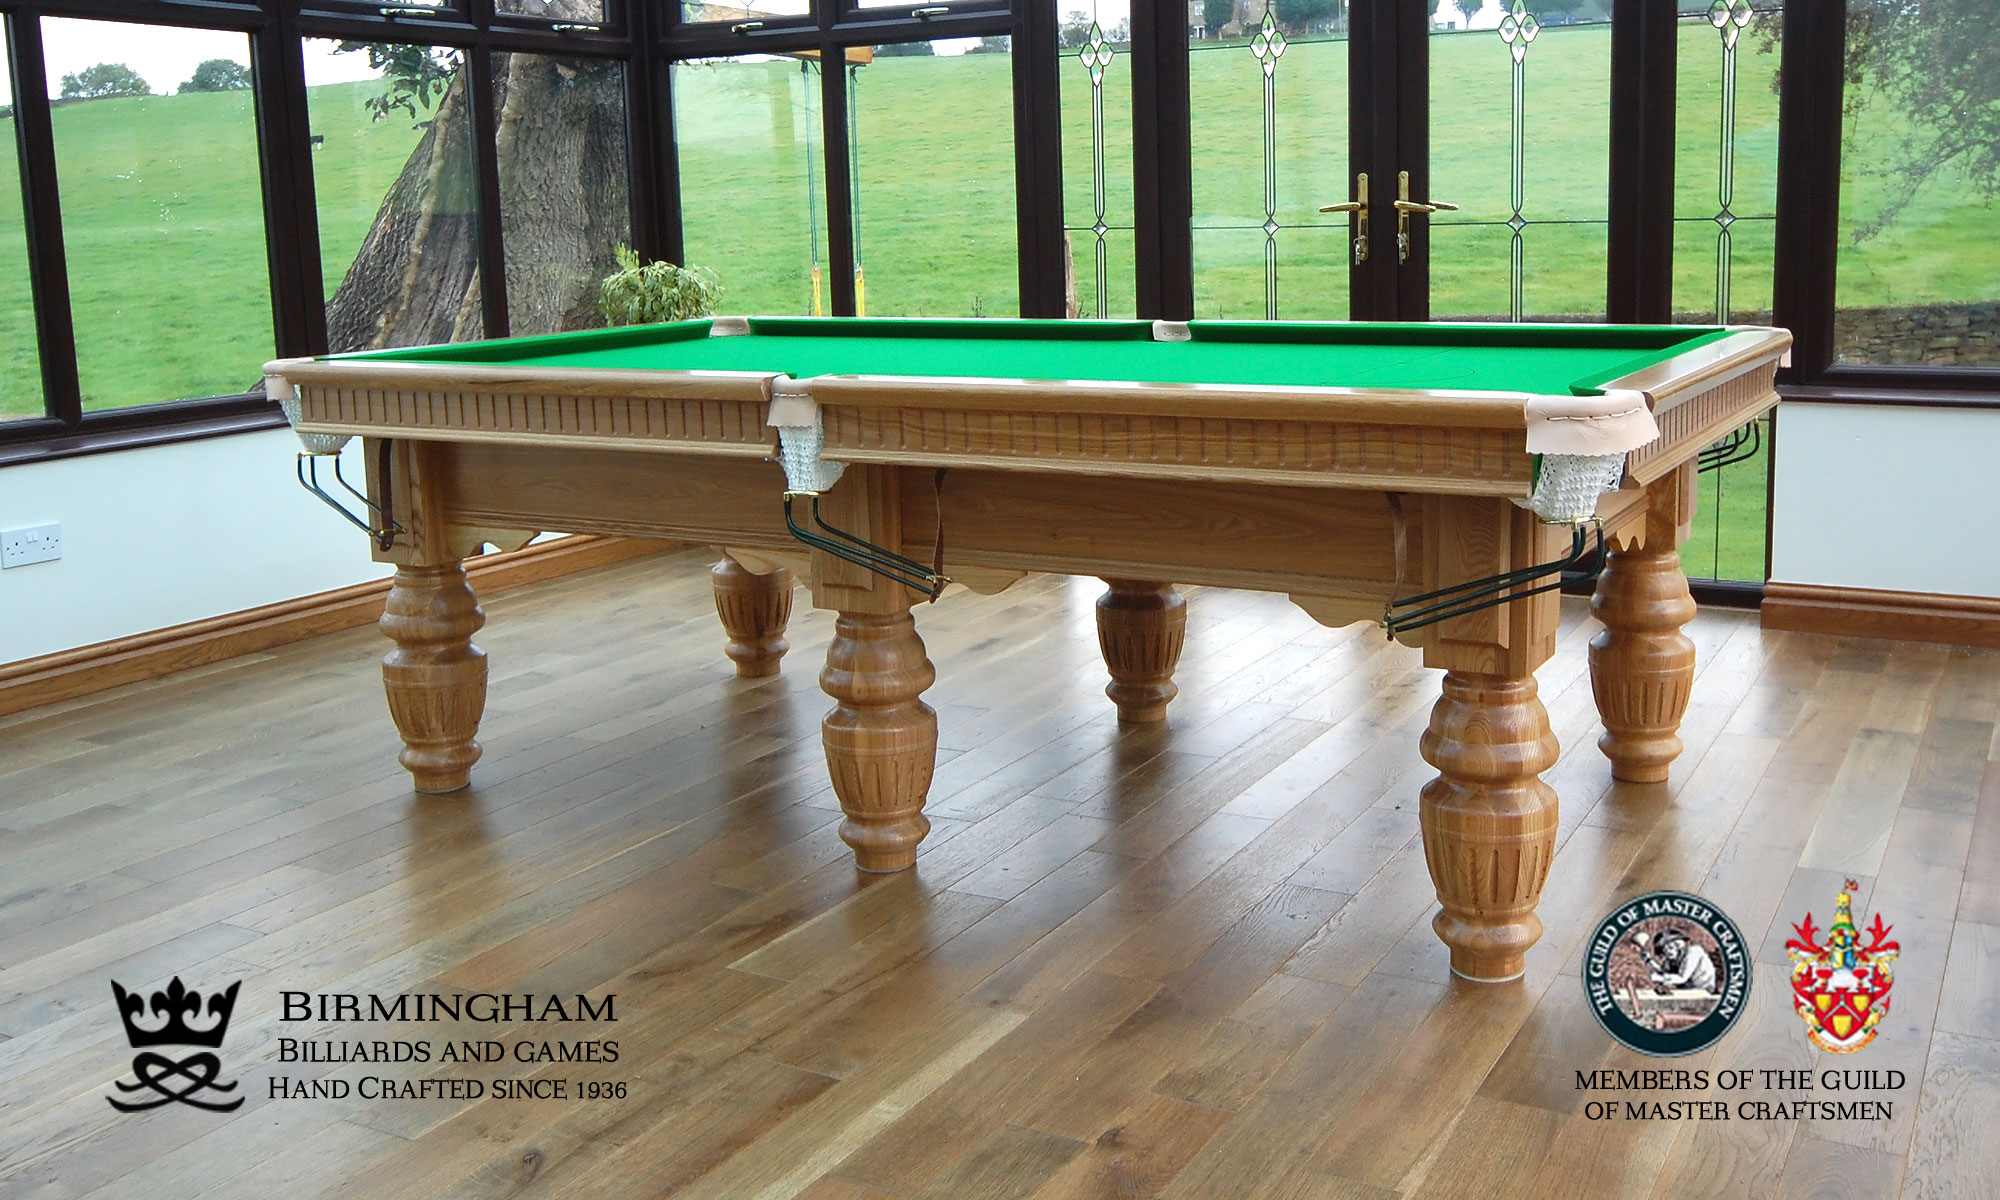 Classic Royal Hand Made Pool Tables